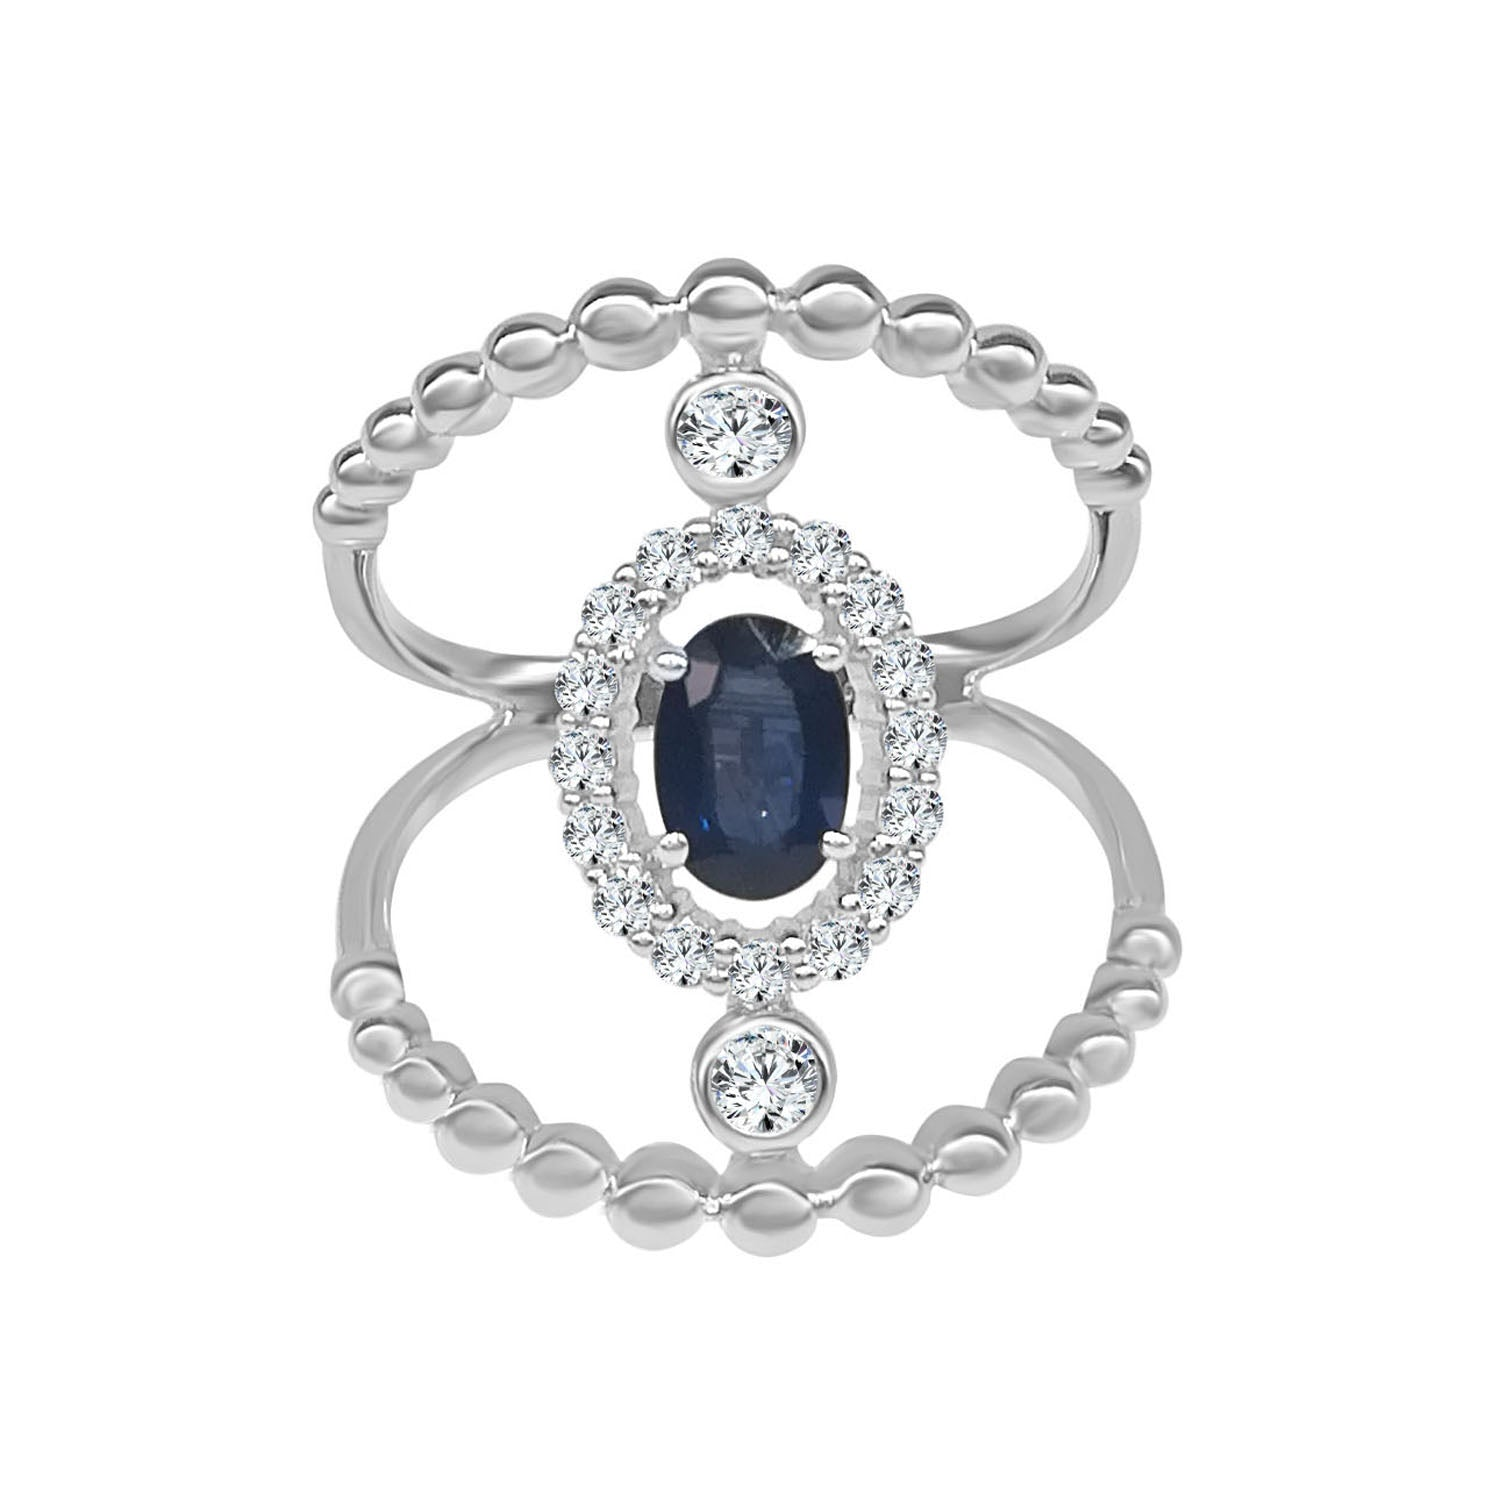 Fancy Cutout Sapphire Diamond And Sapphire Ring